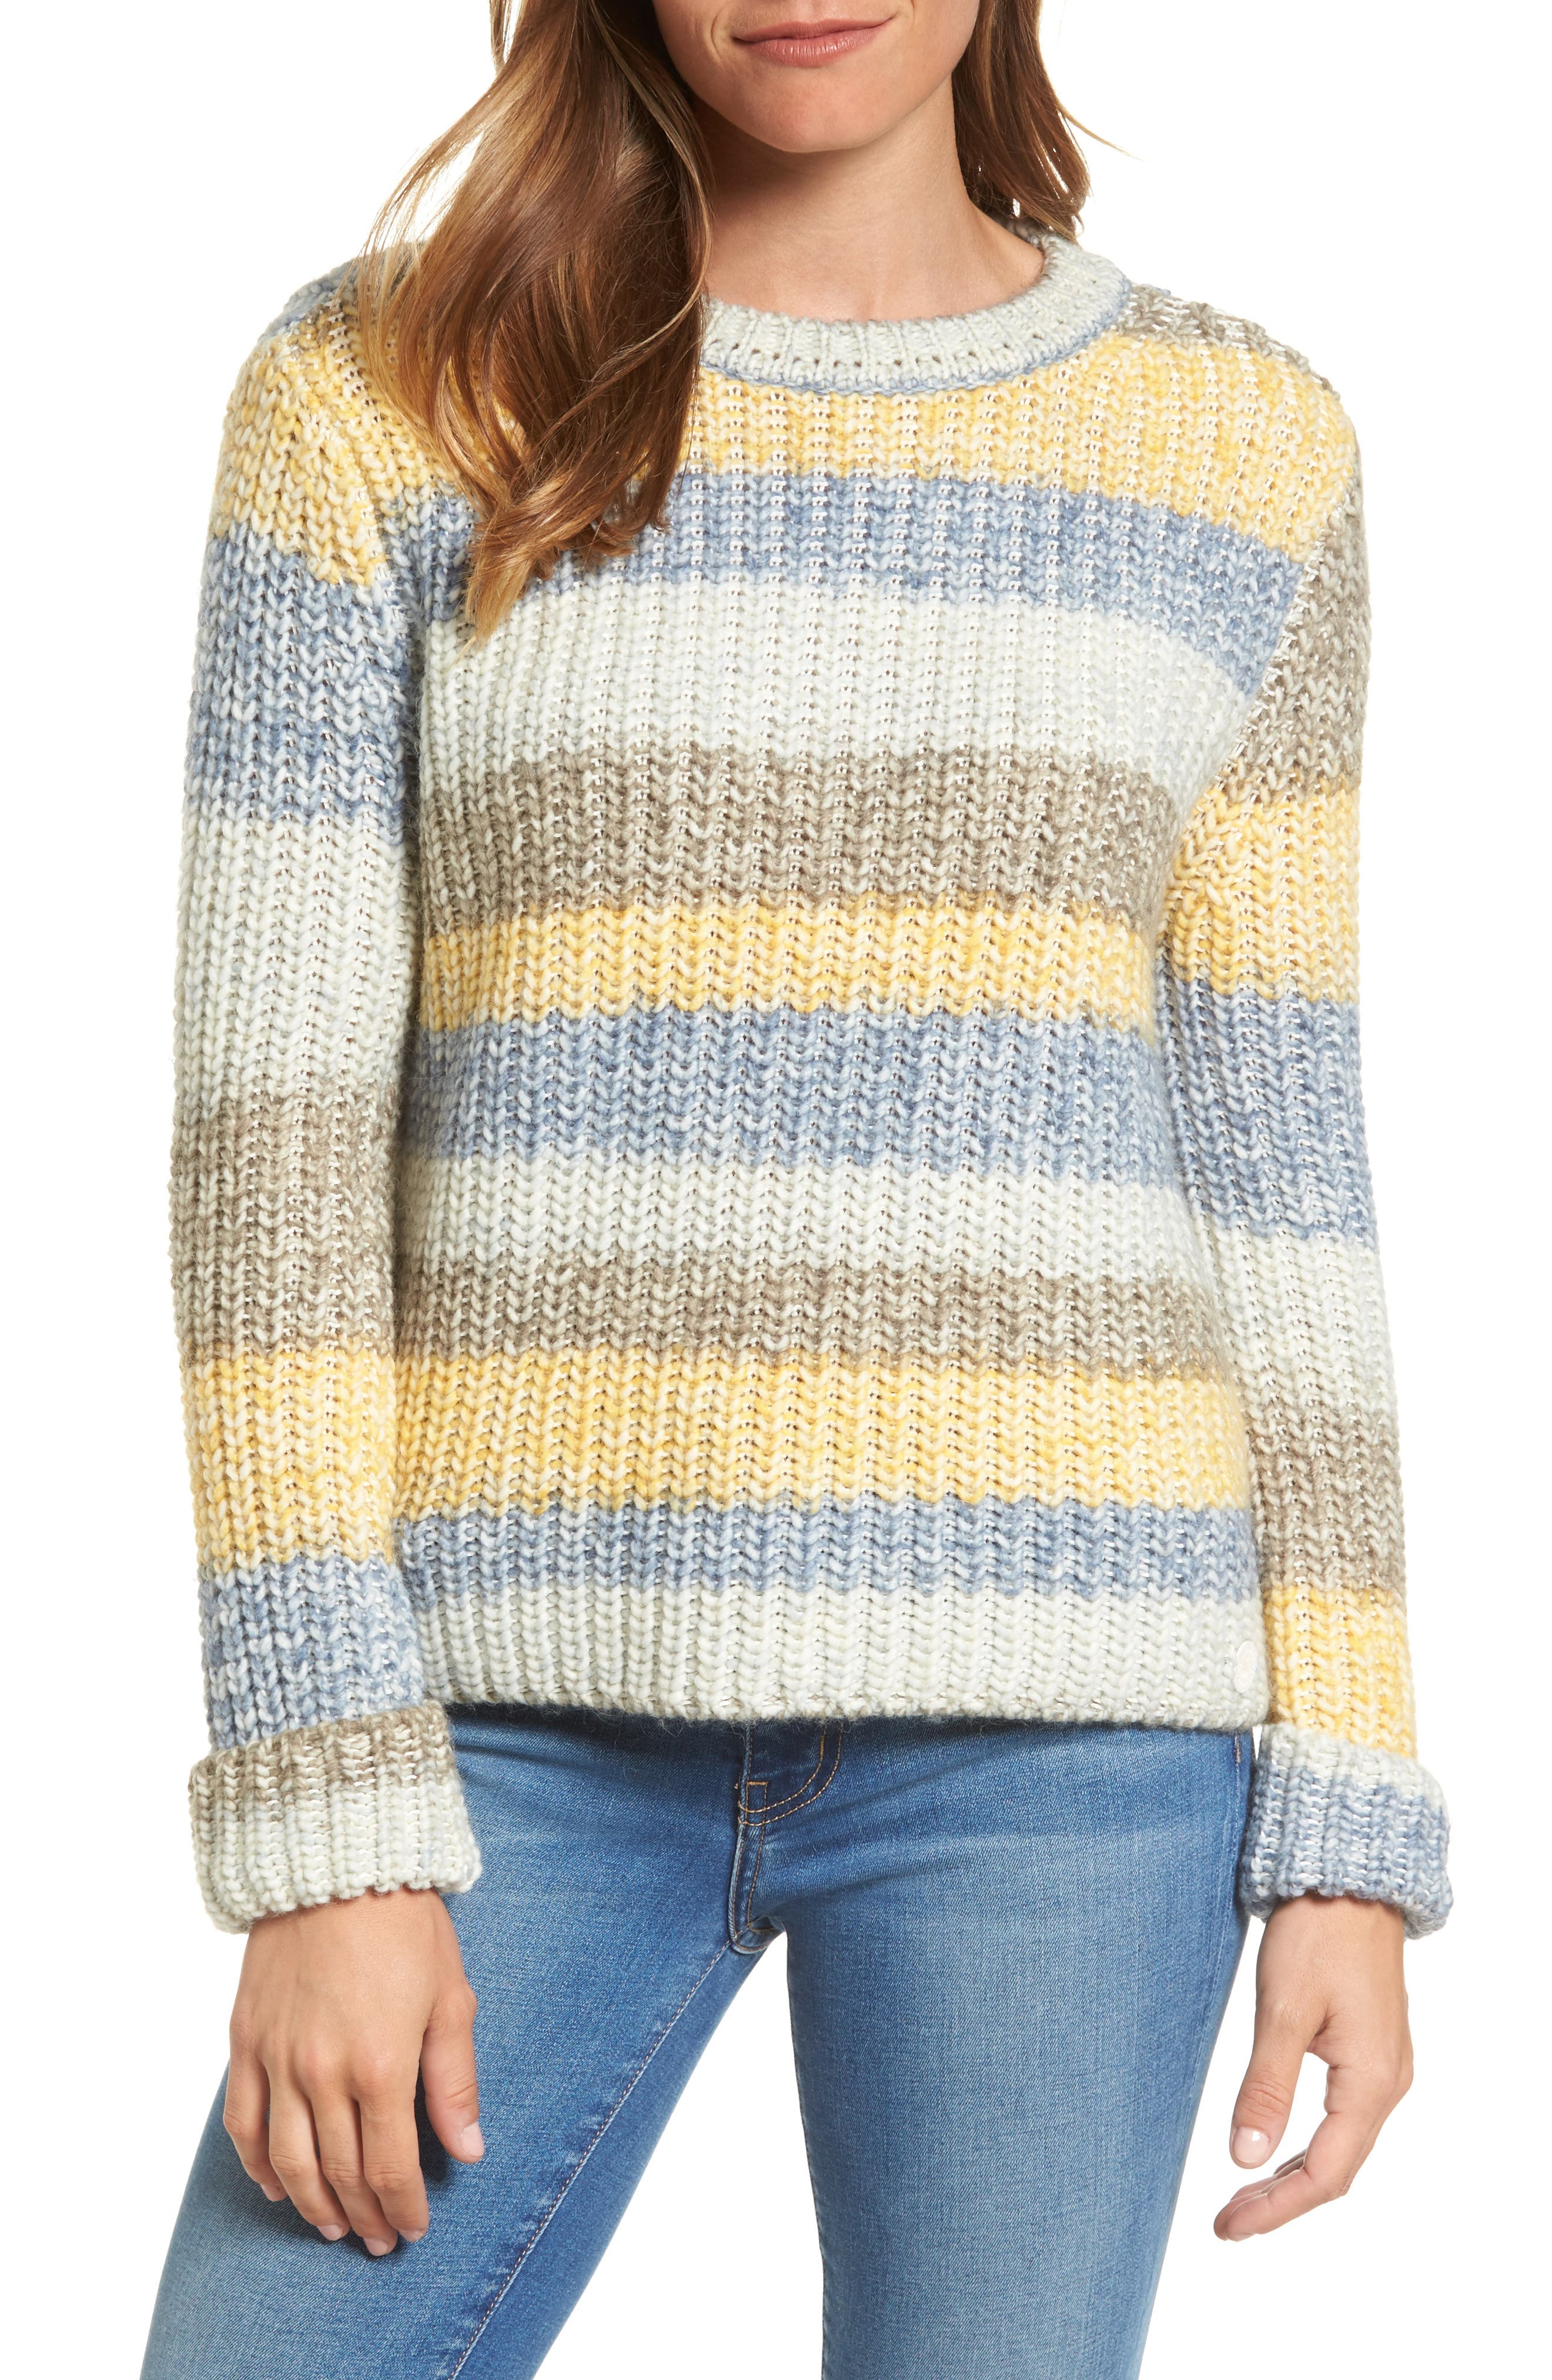 Main Image - Barbour Hive Knit Fisherman Sweater